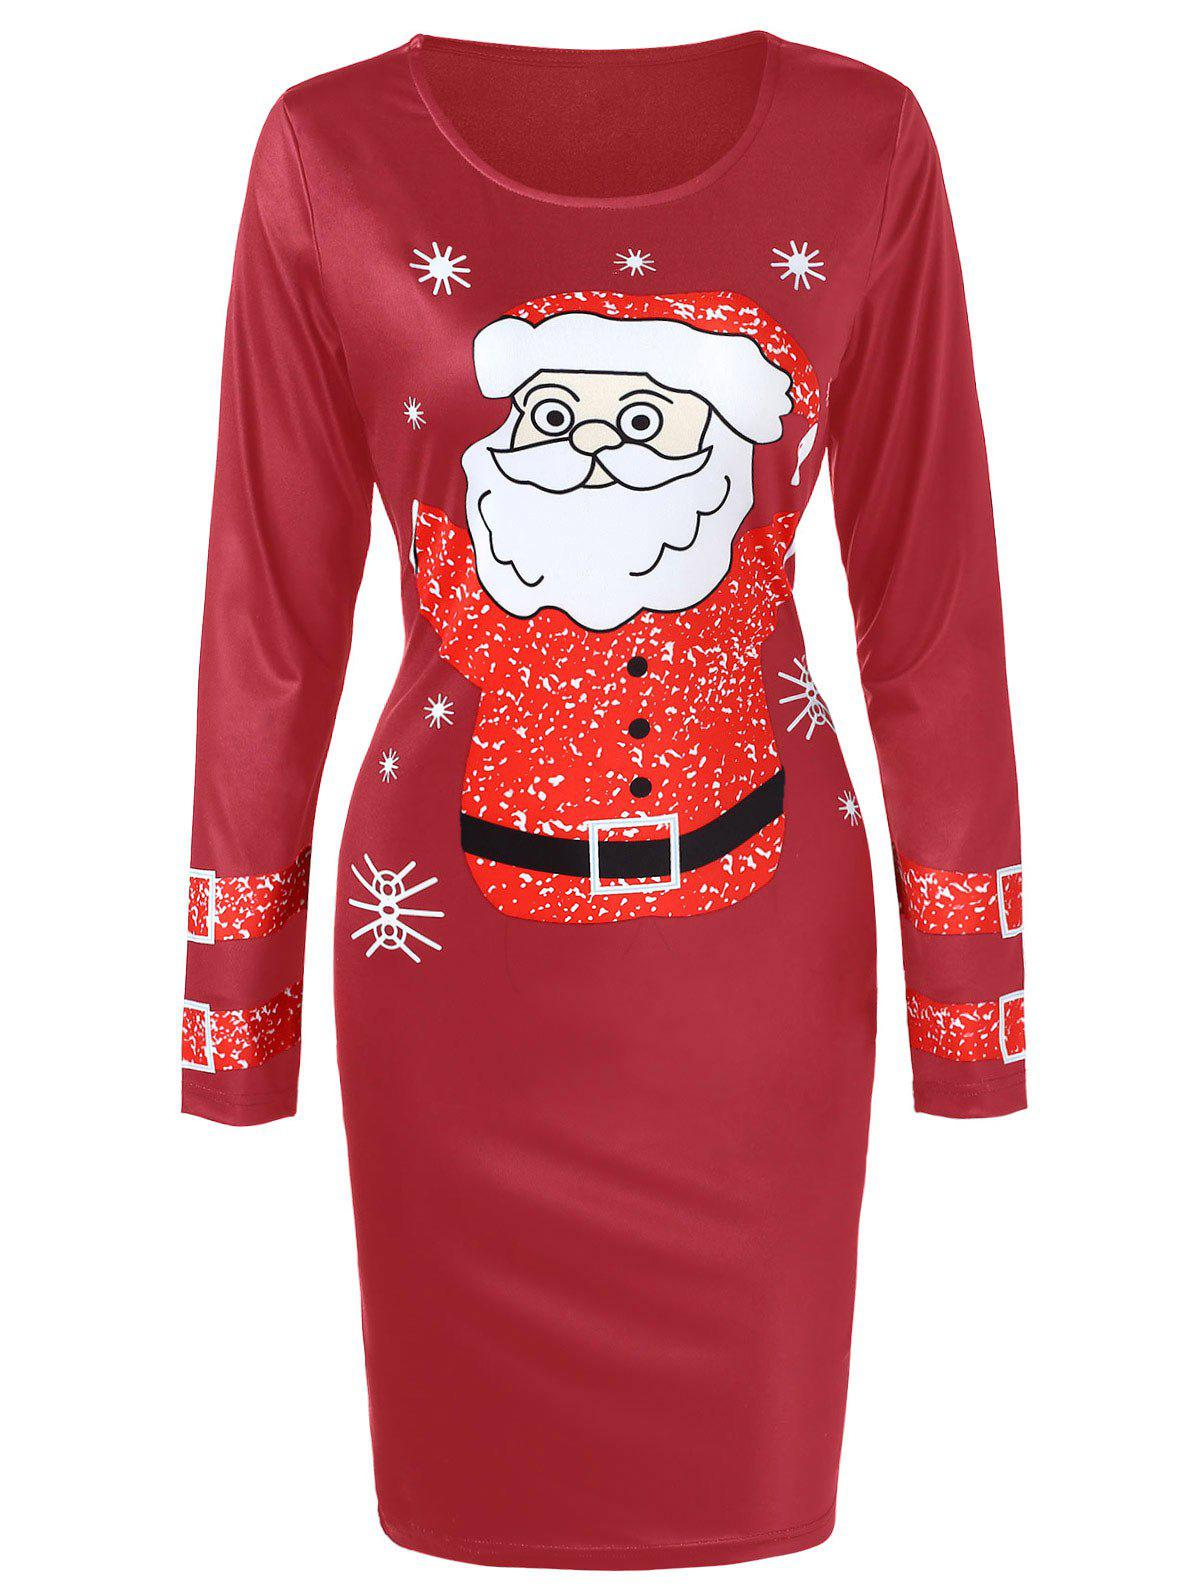 Chic Long Sleeve Santa Claus Printed Christmas Dress